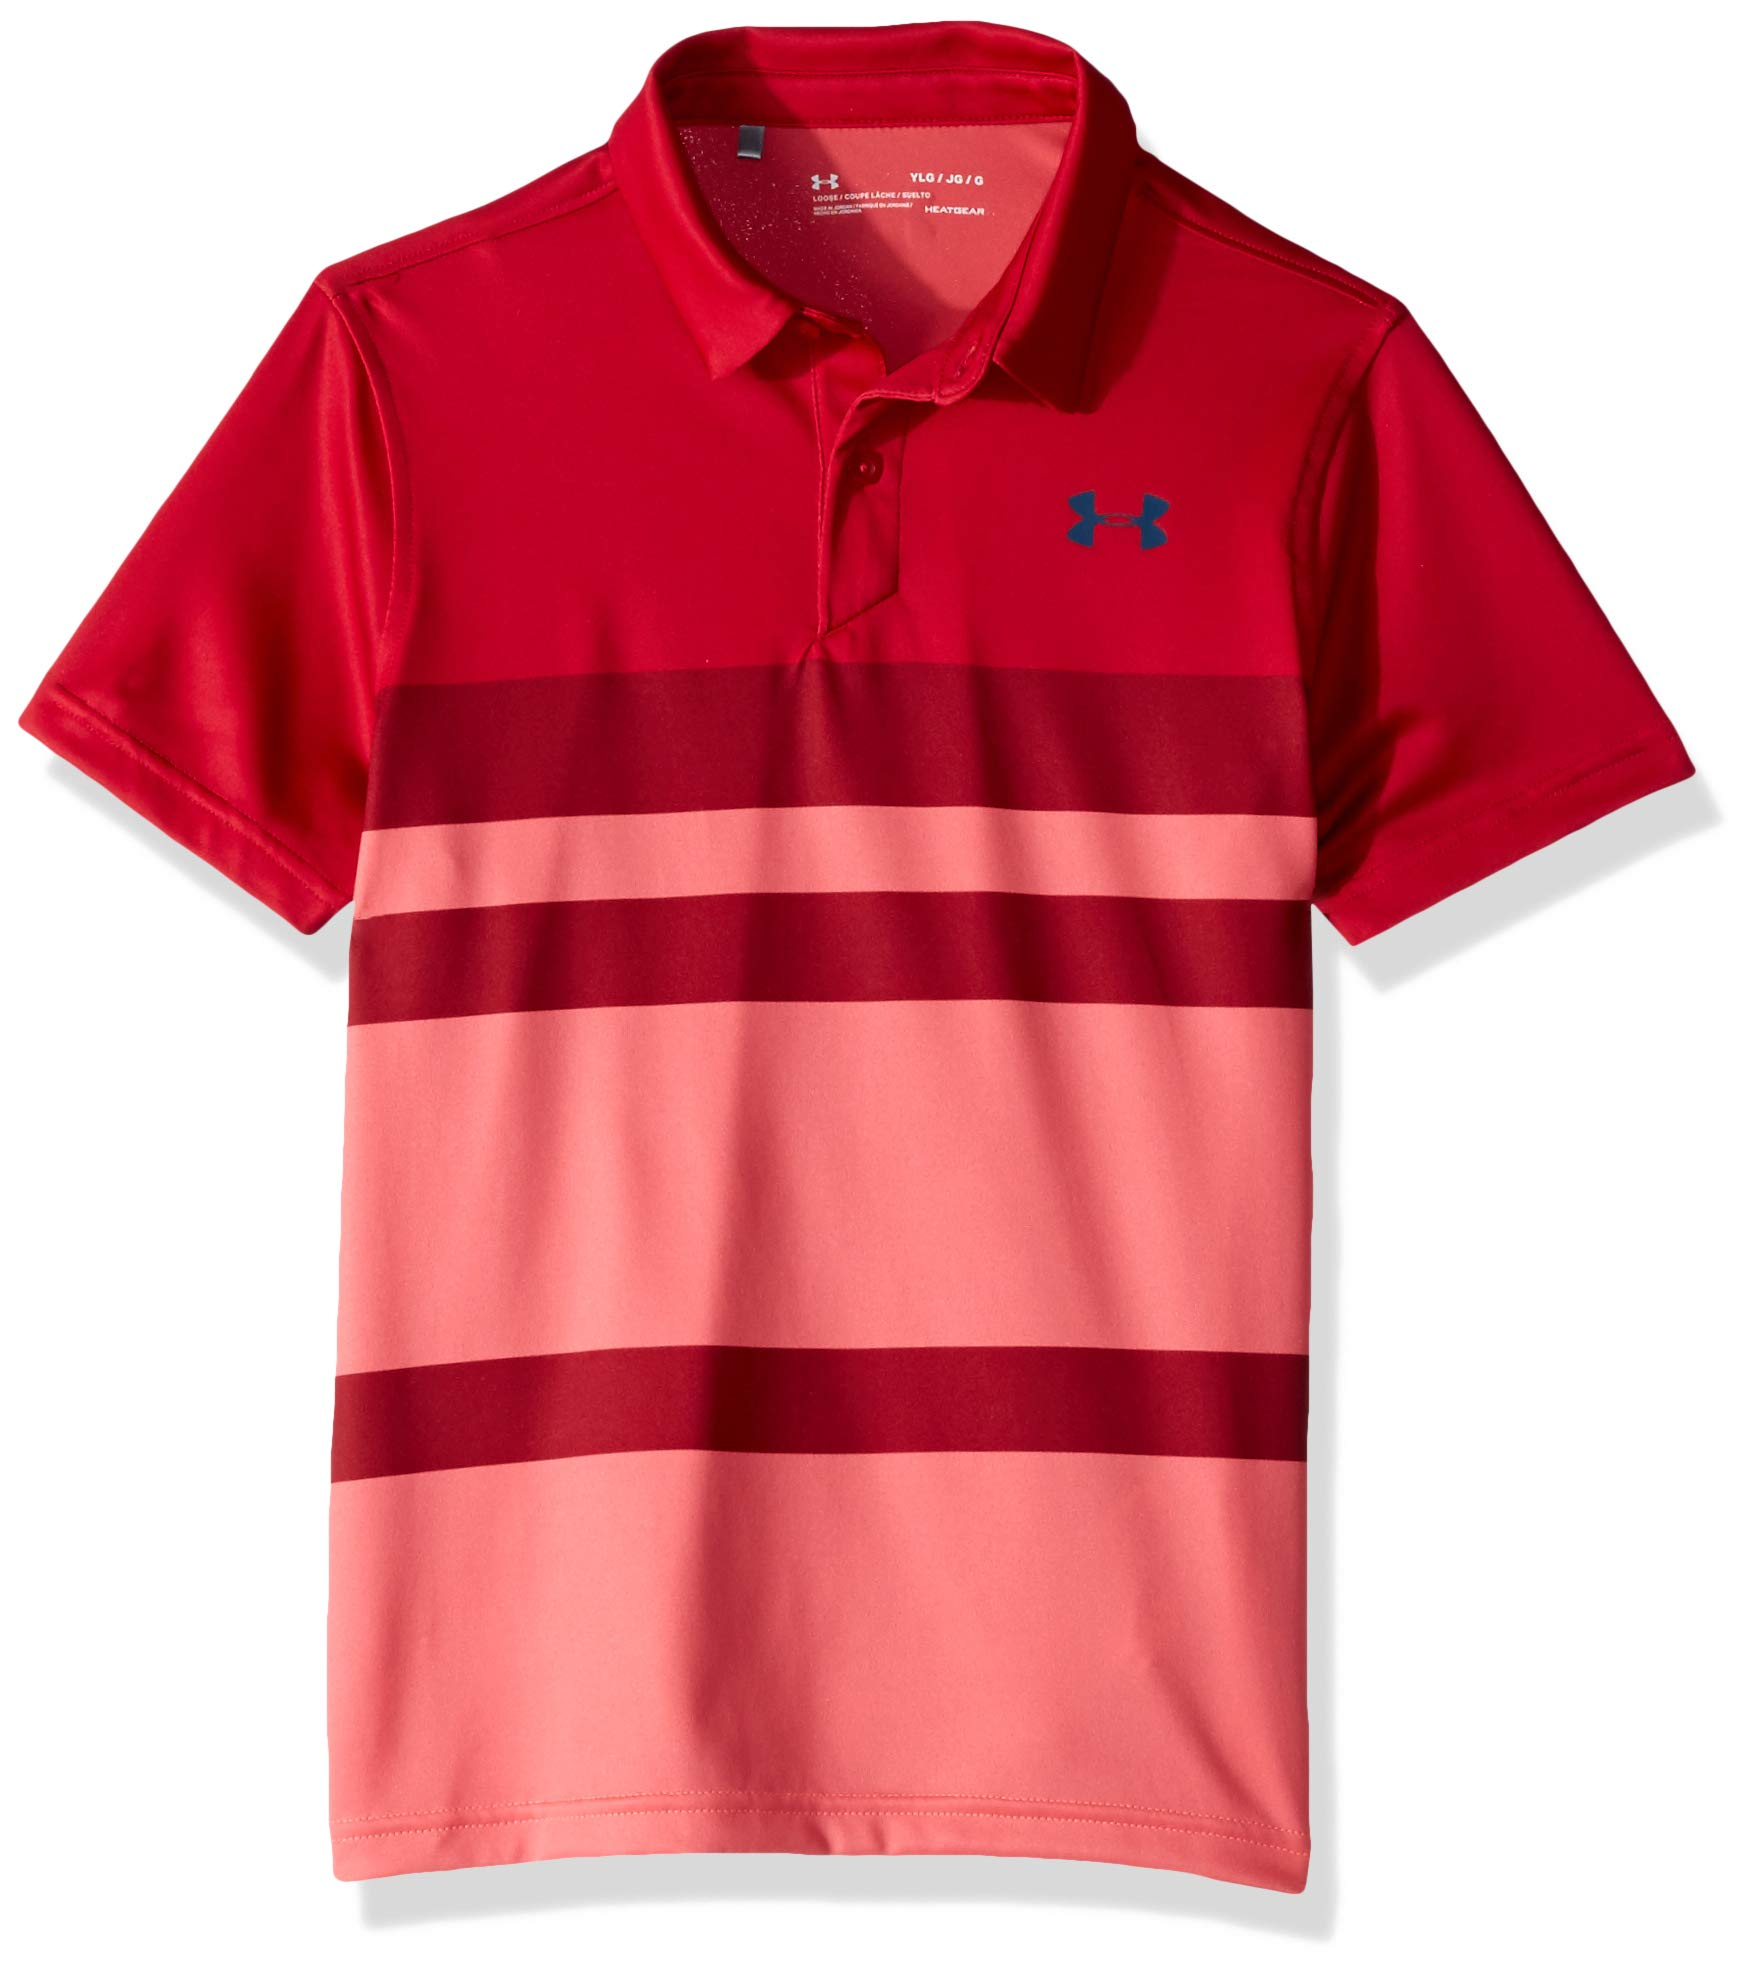 Under Armour Tour Tips Engineered Polo, Lava//Petrol Blue, Youth Small by Under Armour